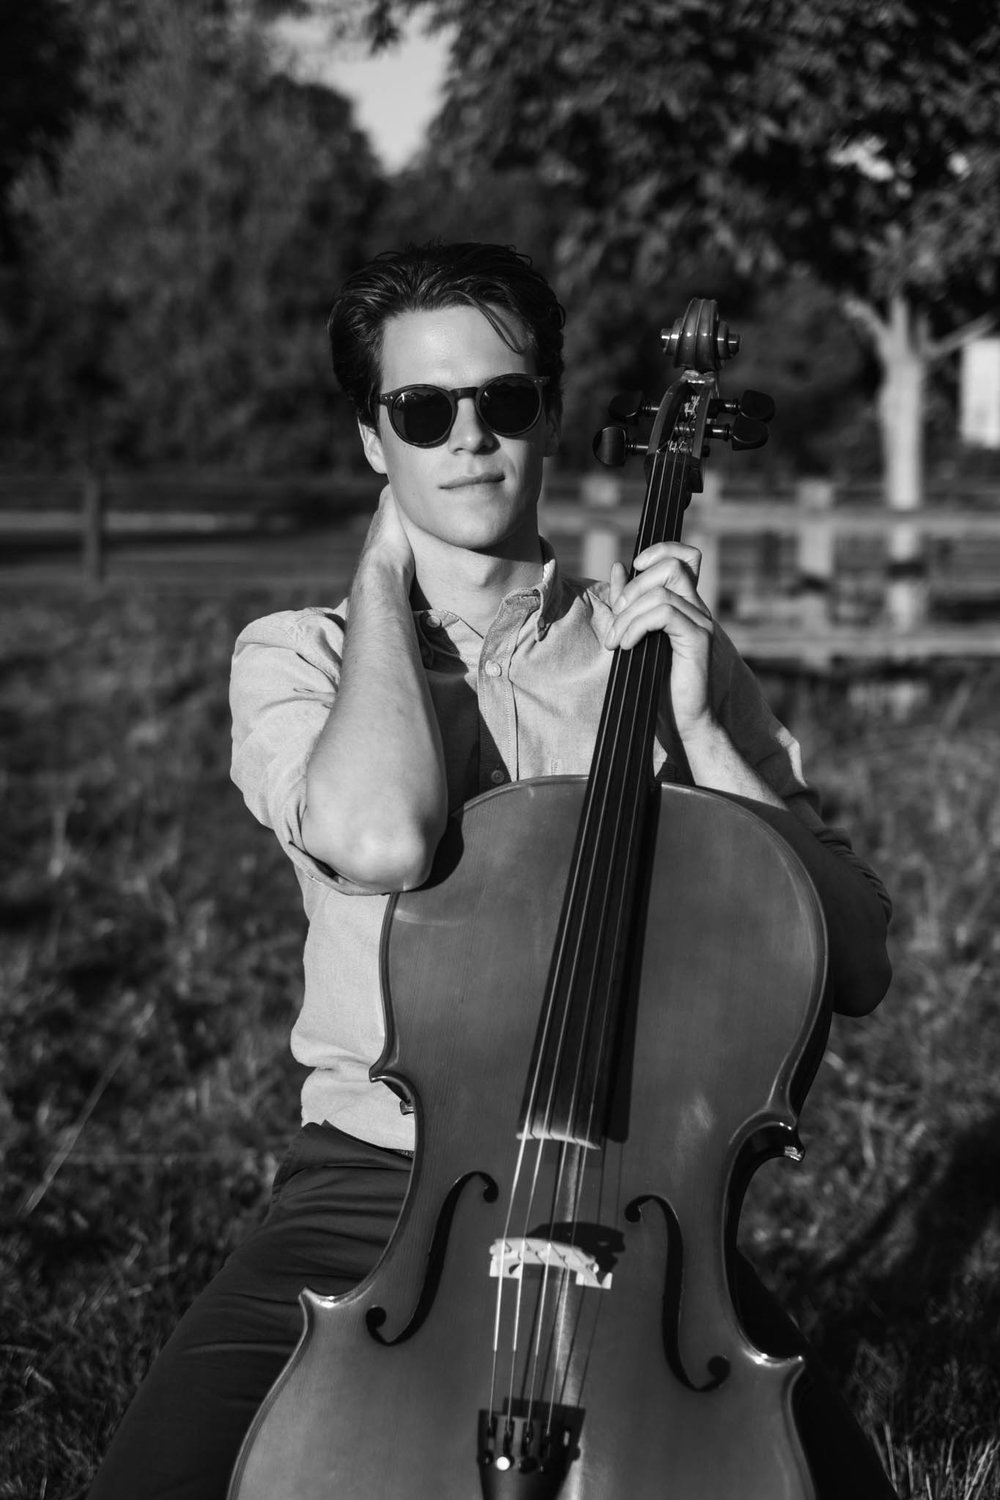 Patrick-Lyall-sunglasses-cello